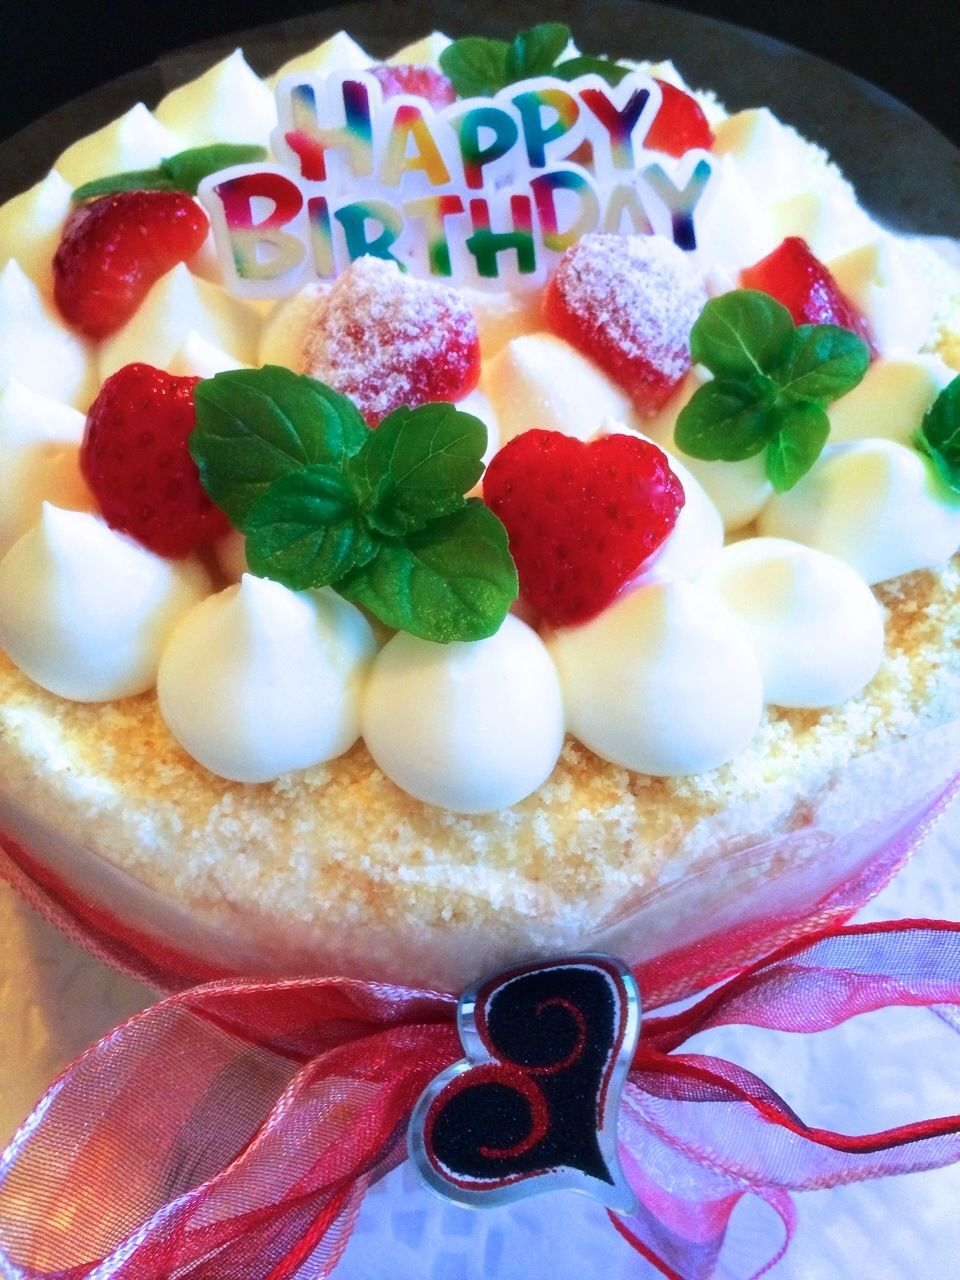 Strawberry Birthday Cake Homemade Japanese Style Cakes Pinterest